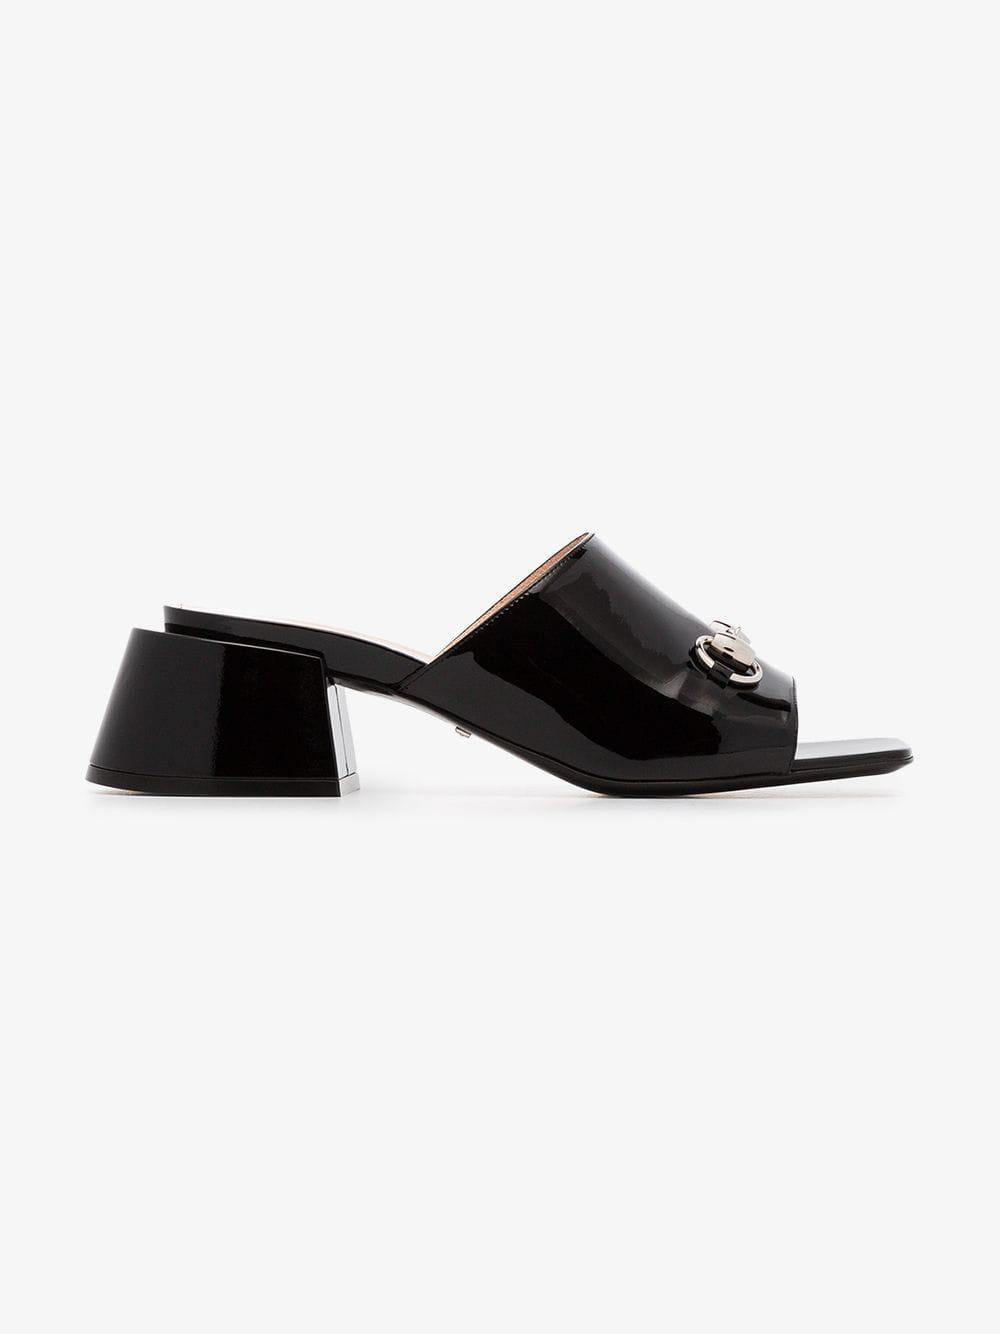 0120376e342 Gucci - Black Patent Leather Mid-heel Slide - Lyst. View fullscreen